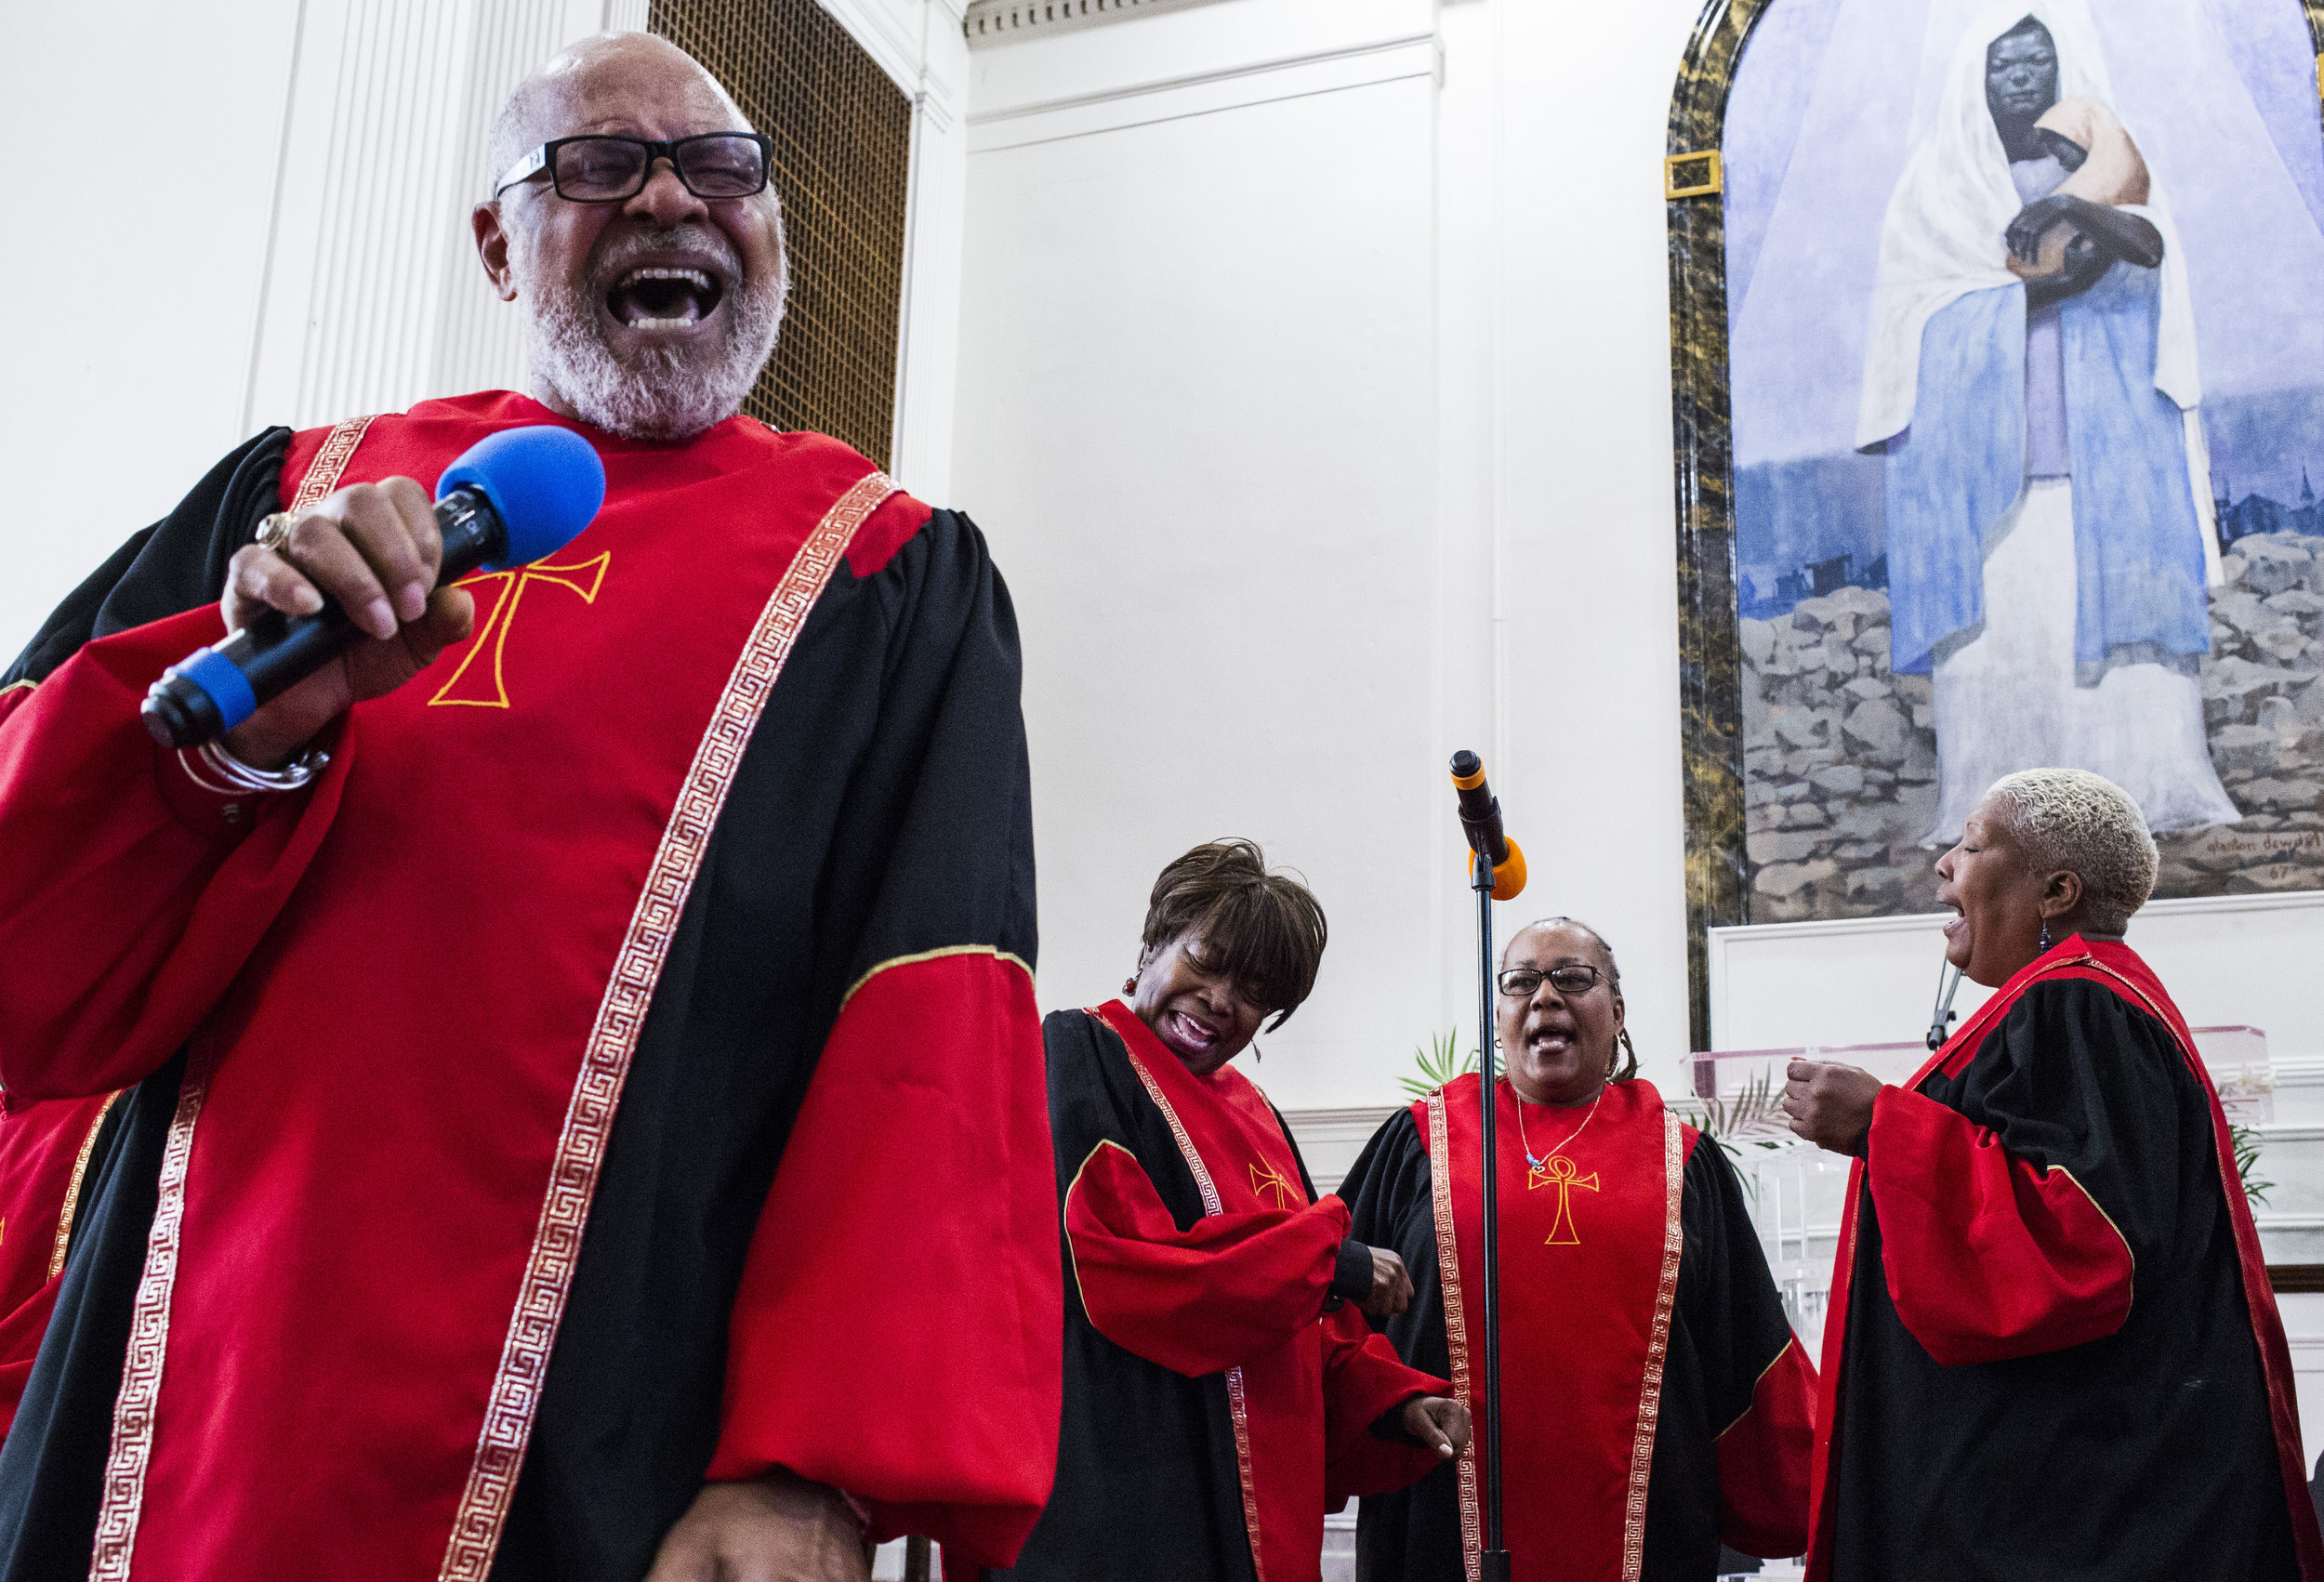 Ireji Flowers, of Detroit, leads the congregation in song during the morning service at the Shrine of the Black Madonna Pan-African Orthodox Christian Church in Detroit on Sunday, April 23, 2017. The church celebrated its 50th anniversary since the reveal of the Black Madonna painting in it's sanctuary.